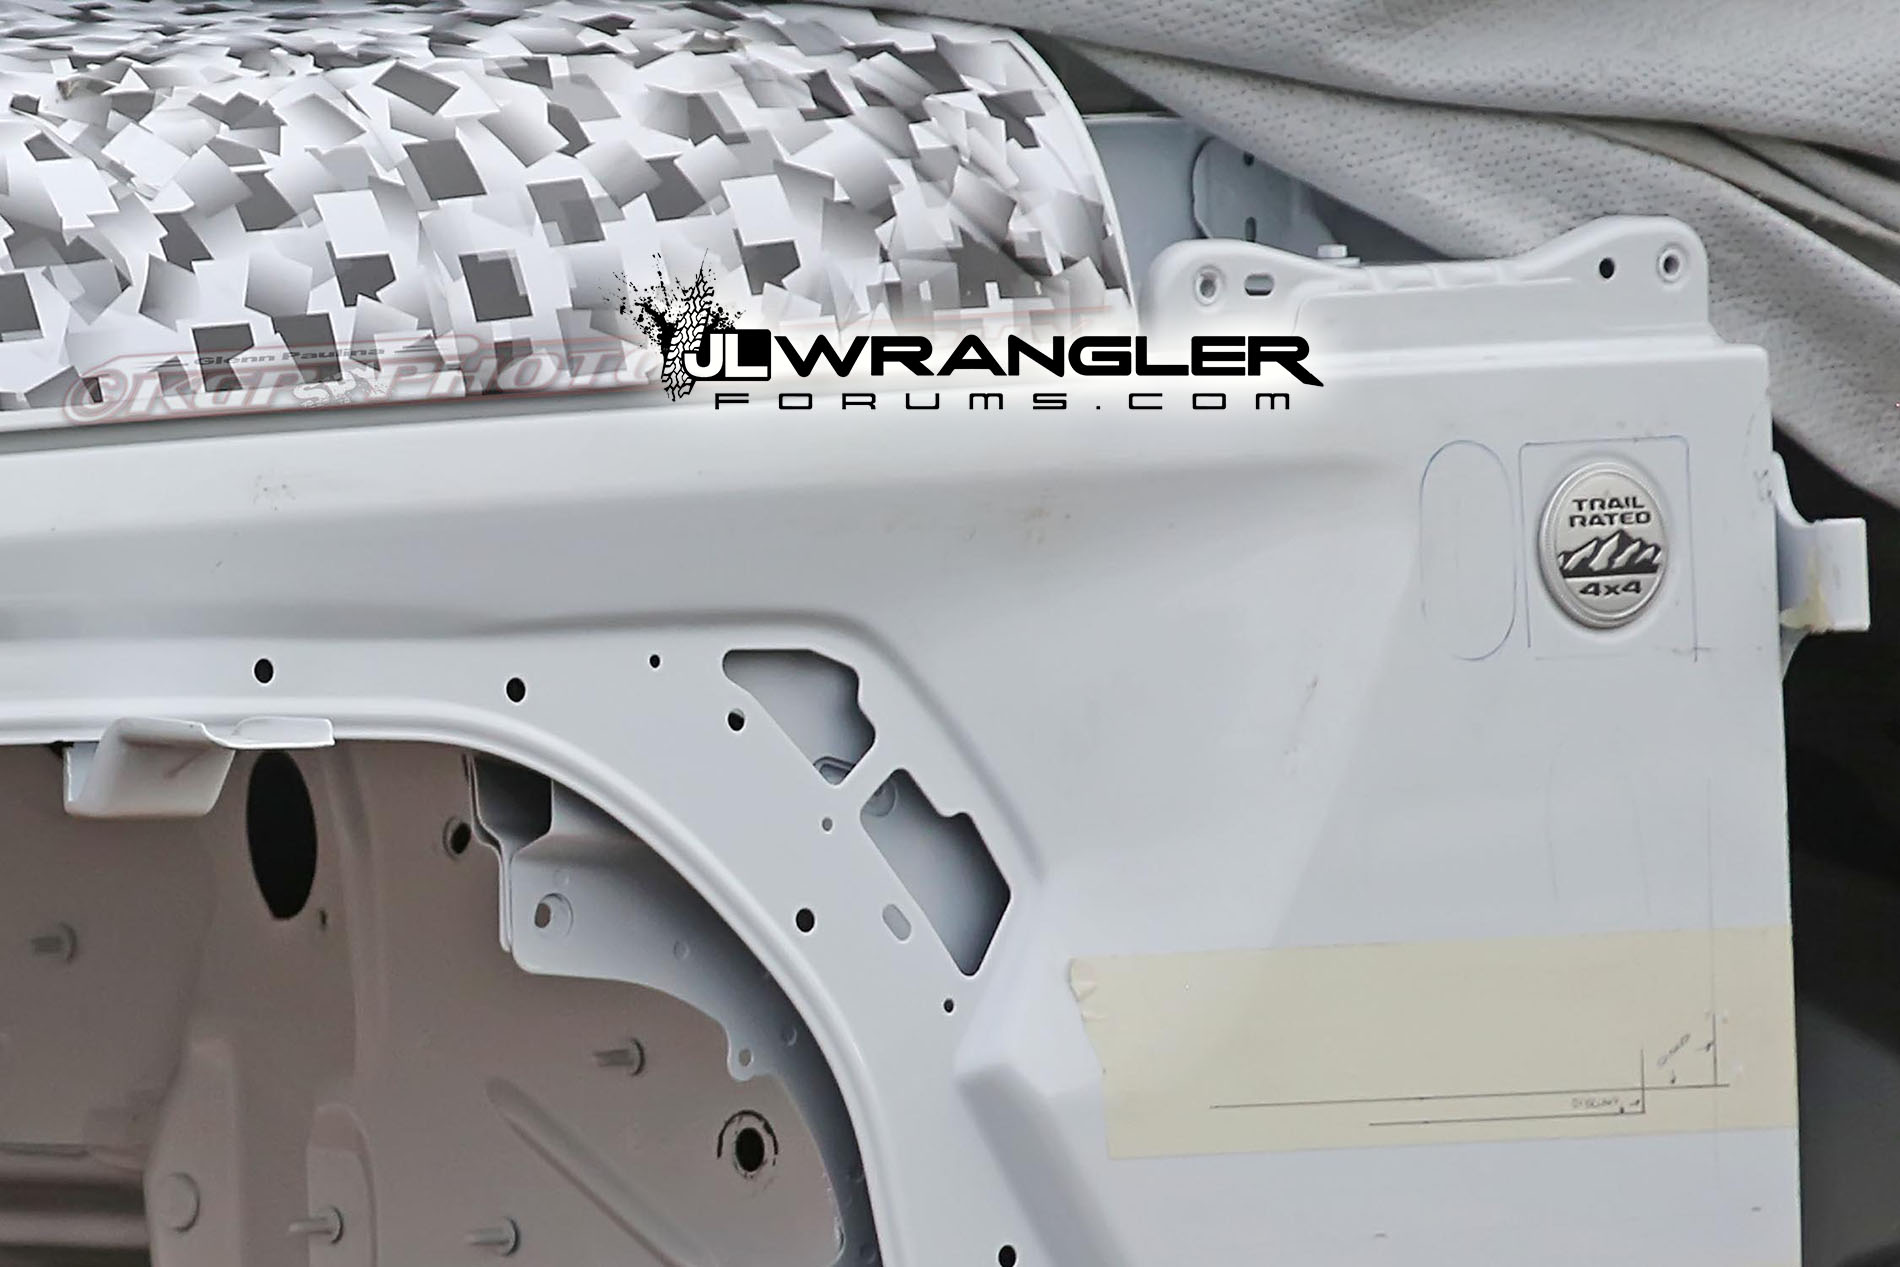 Wrangler Unlimited Rubicon >> JL Wrangler body in white shell shows fender lights + vents, hood latches + design, roll cage ...